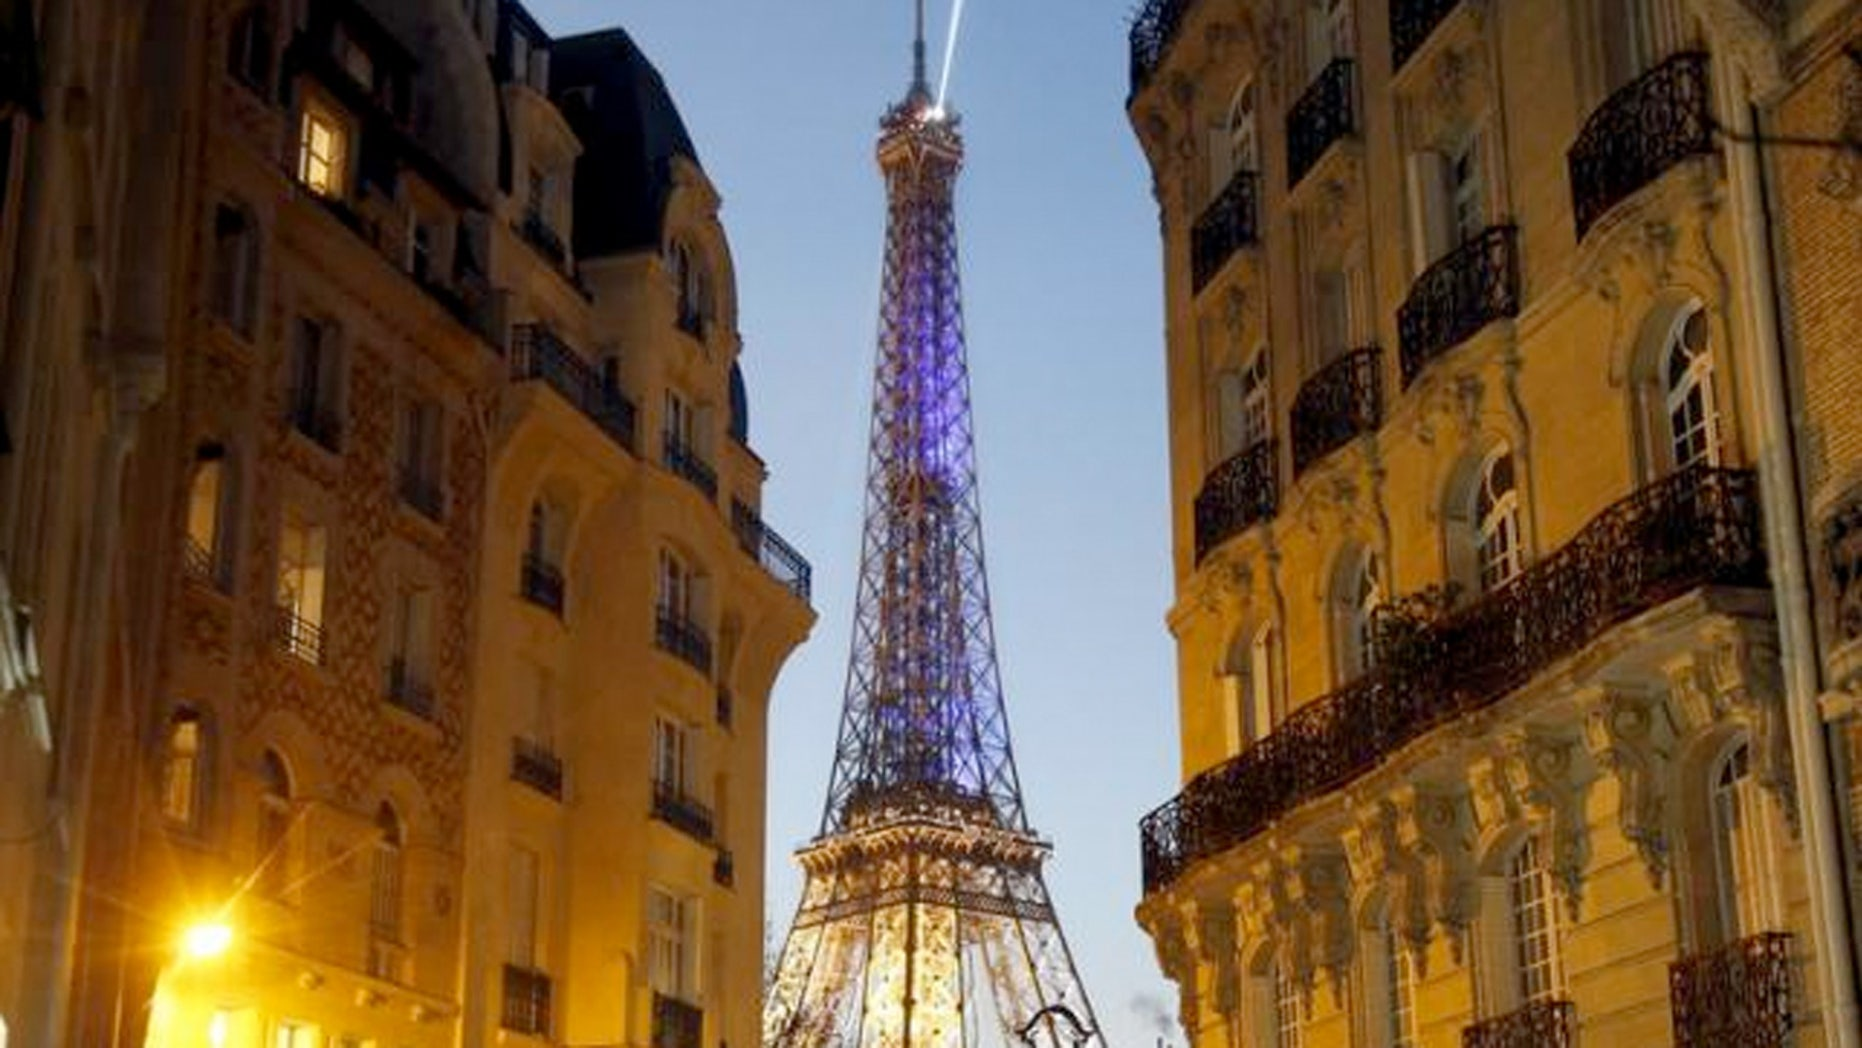 Several travel indicators show that 2016 may be a good year for Paris.